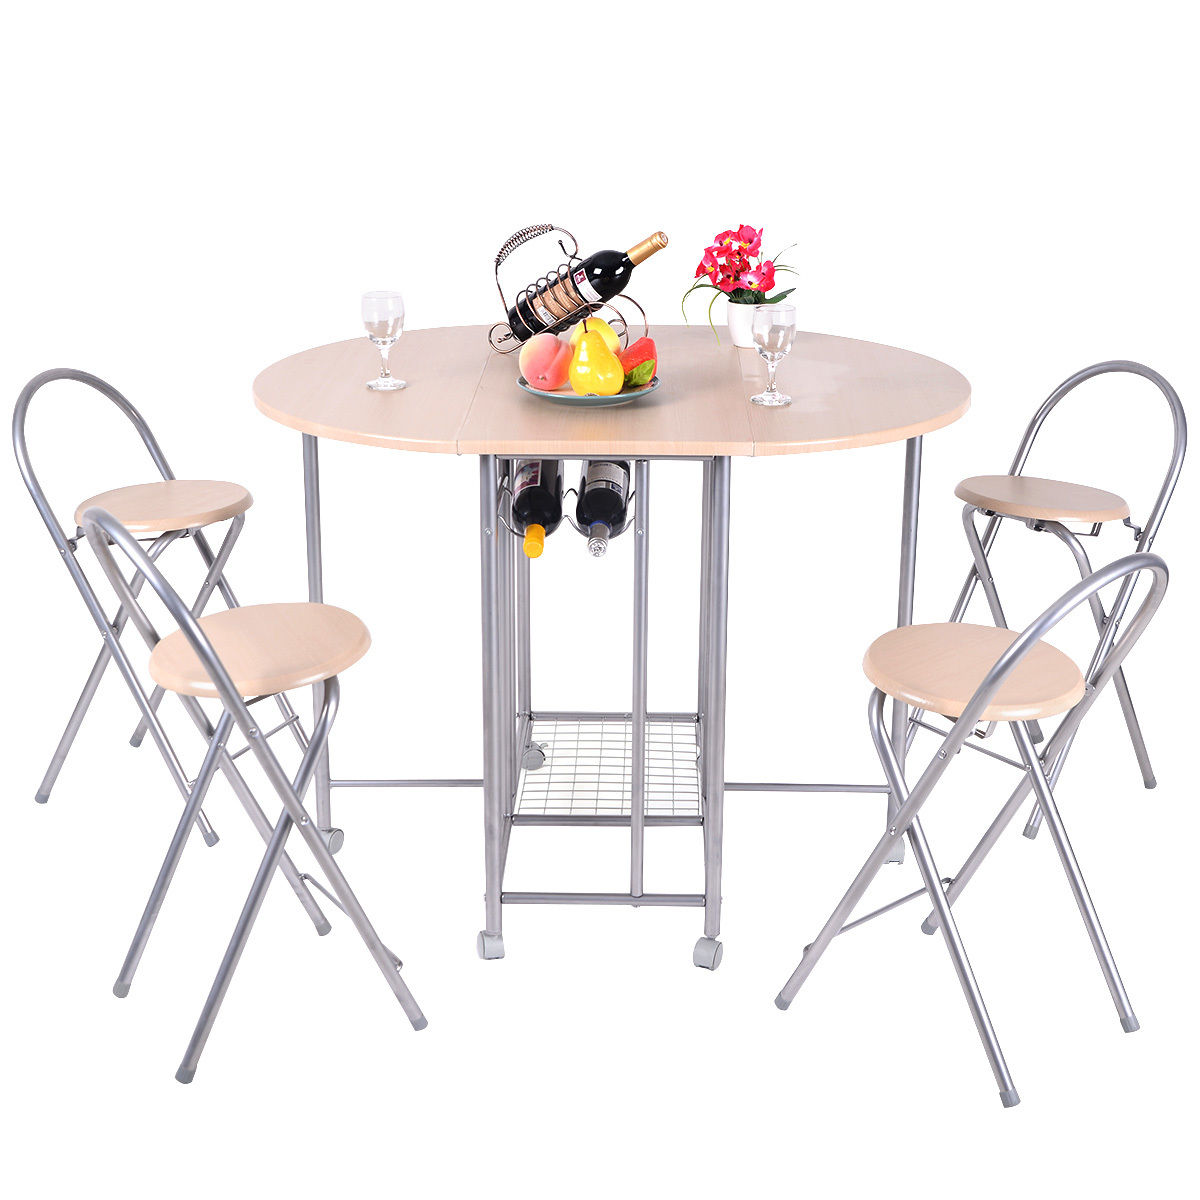 5 Pieces Foldable Dining Set